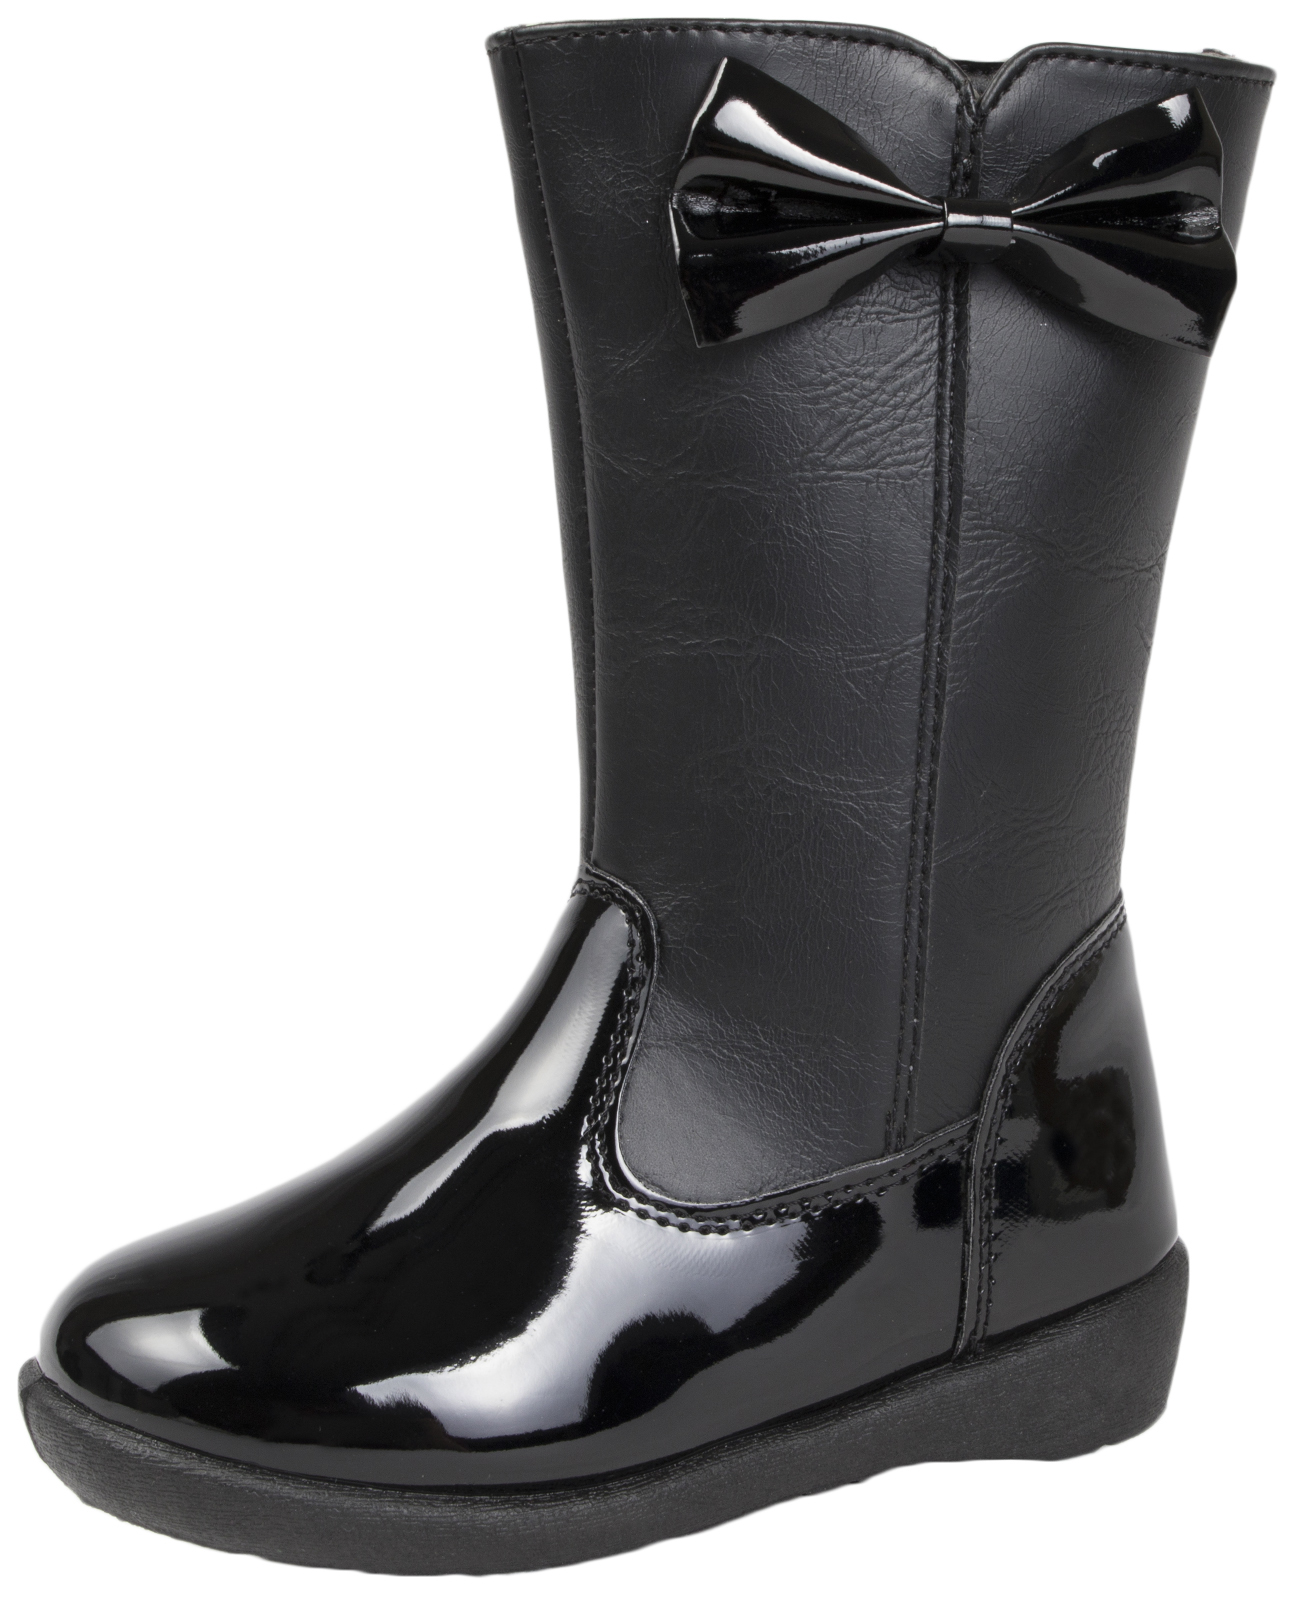 Girls Black Faux Leather Knee High Boots 3D Patent Bow Winter School Shoes Size